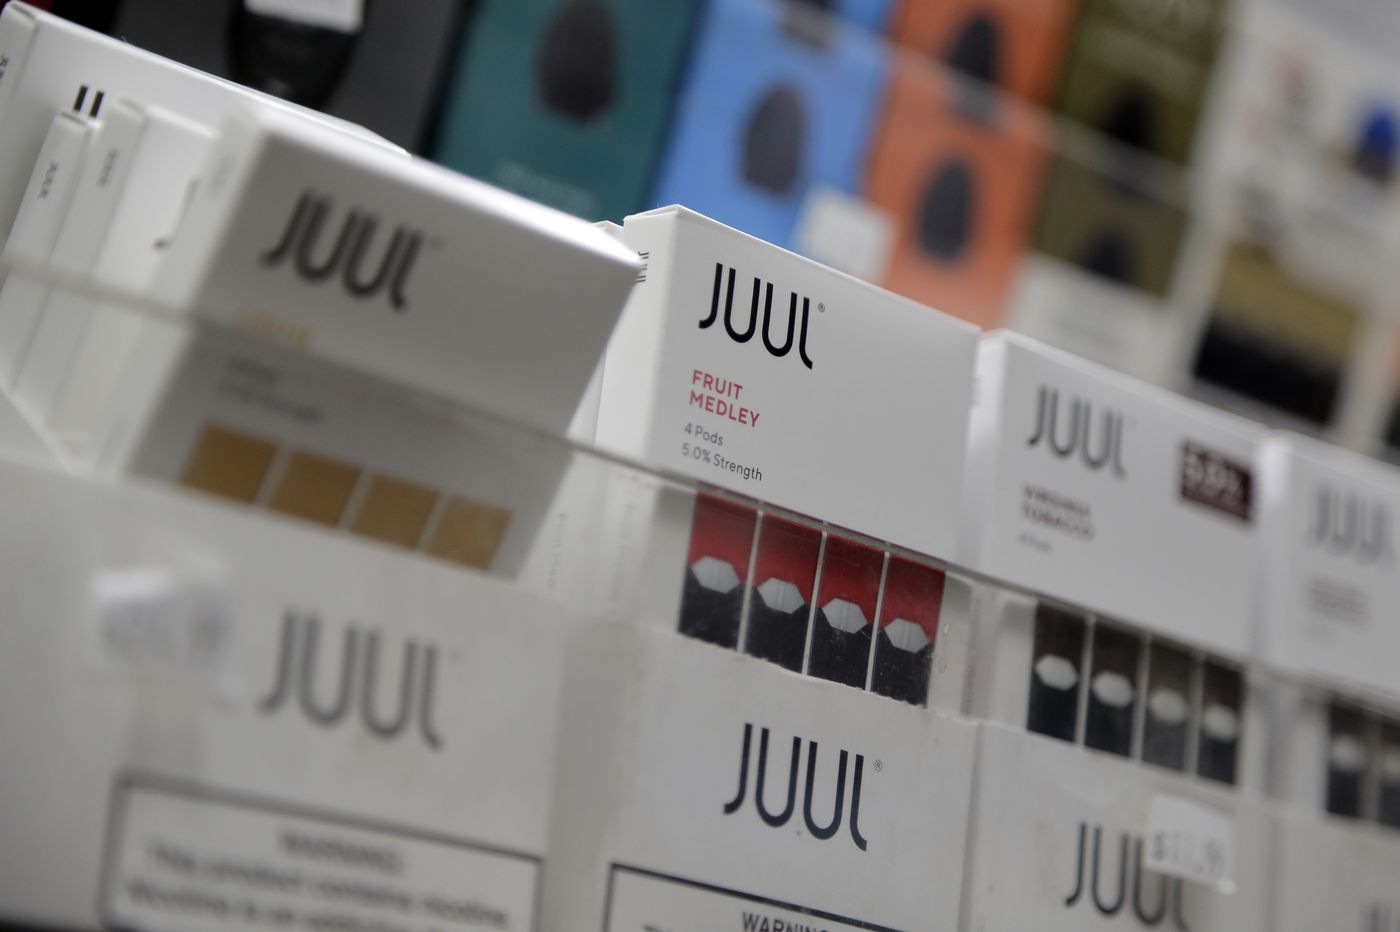 Pennsylvania sues Juul, demands ban on maker's vaping products